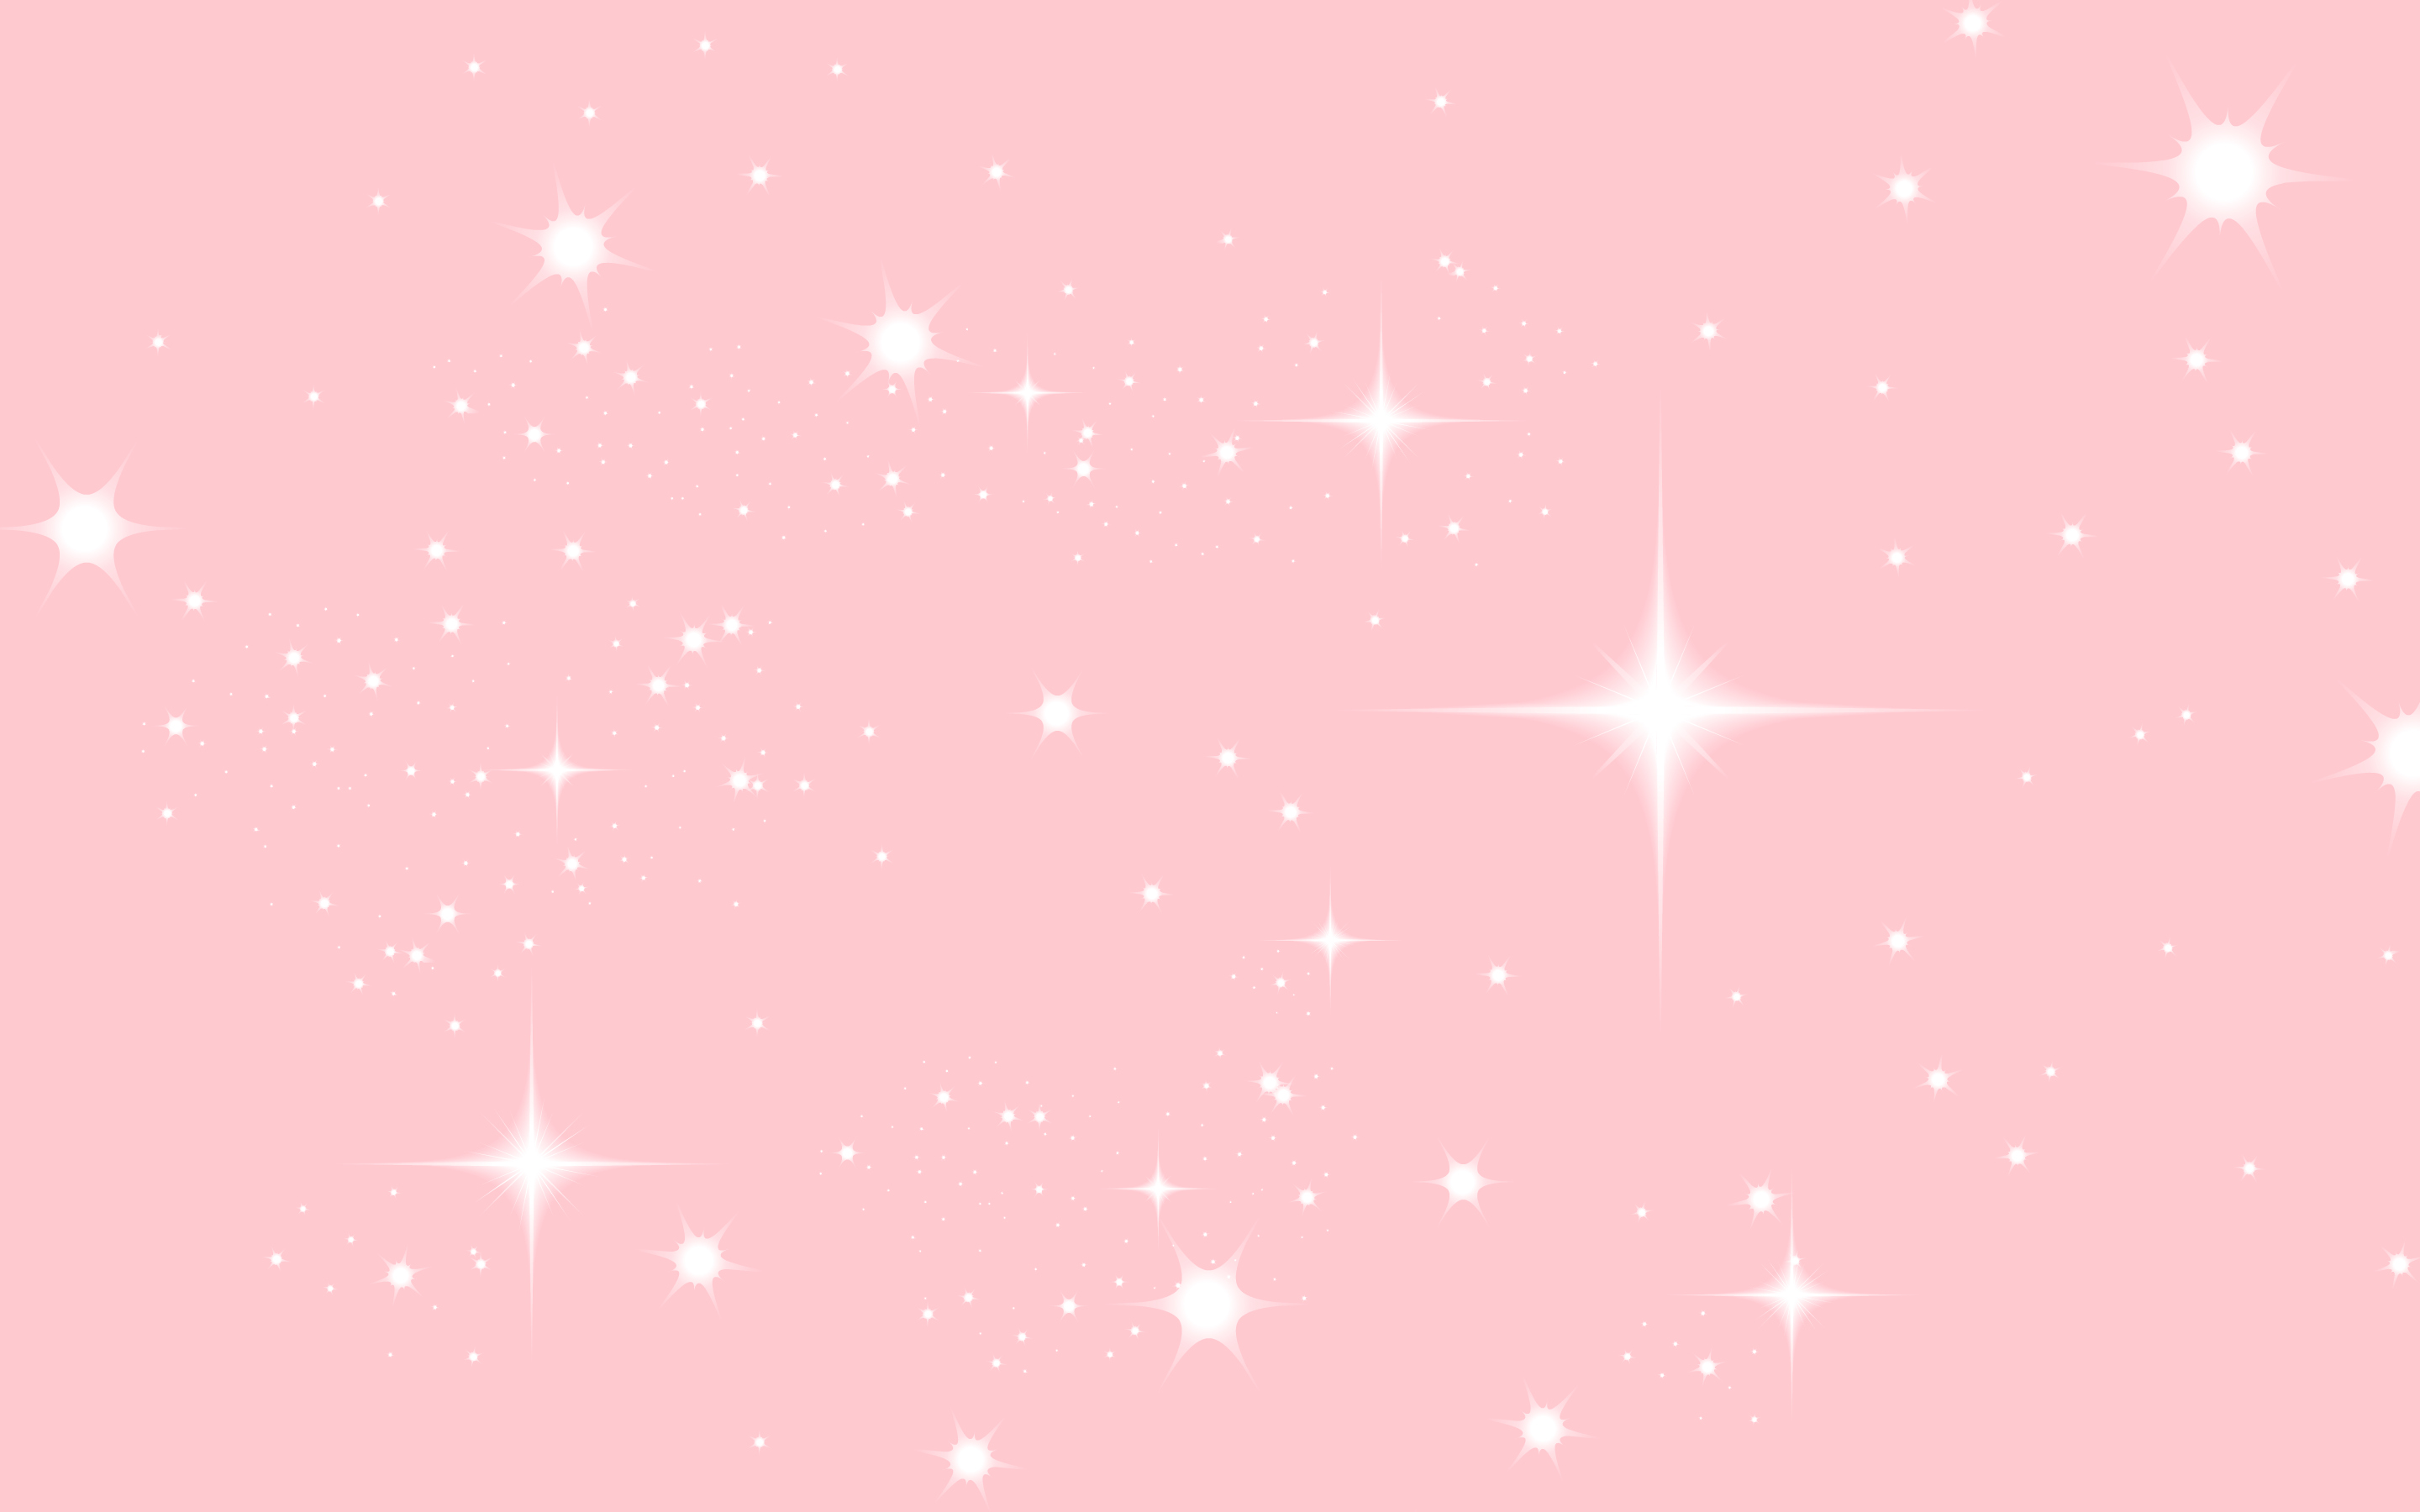 pale pink color background - photo #28